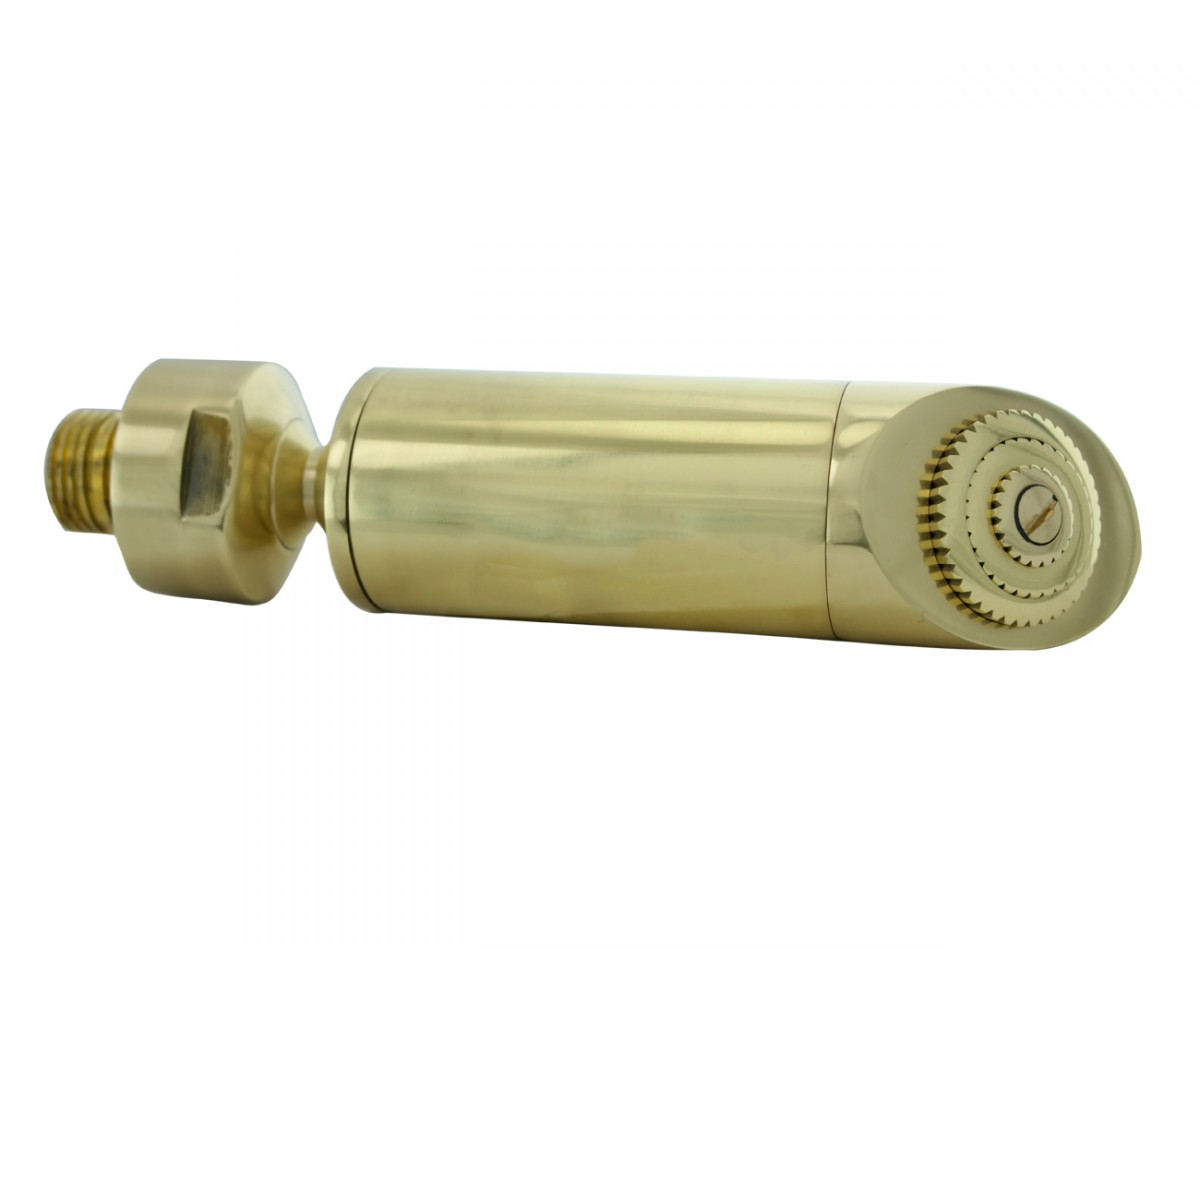 Shower Head Gold PVD Brass 90 Fine Mist Jets Showerhead Only Shower Head Shower Heads Bath Shower Head